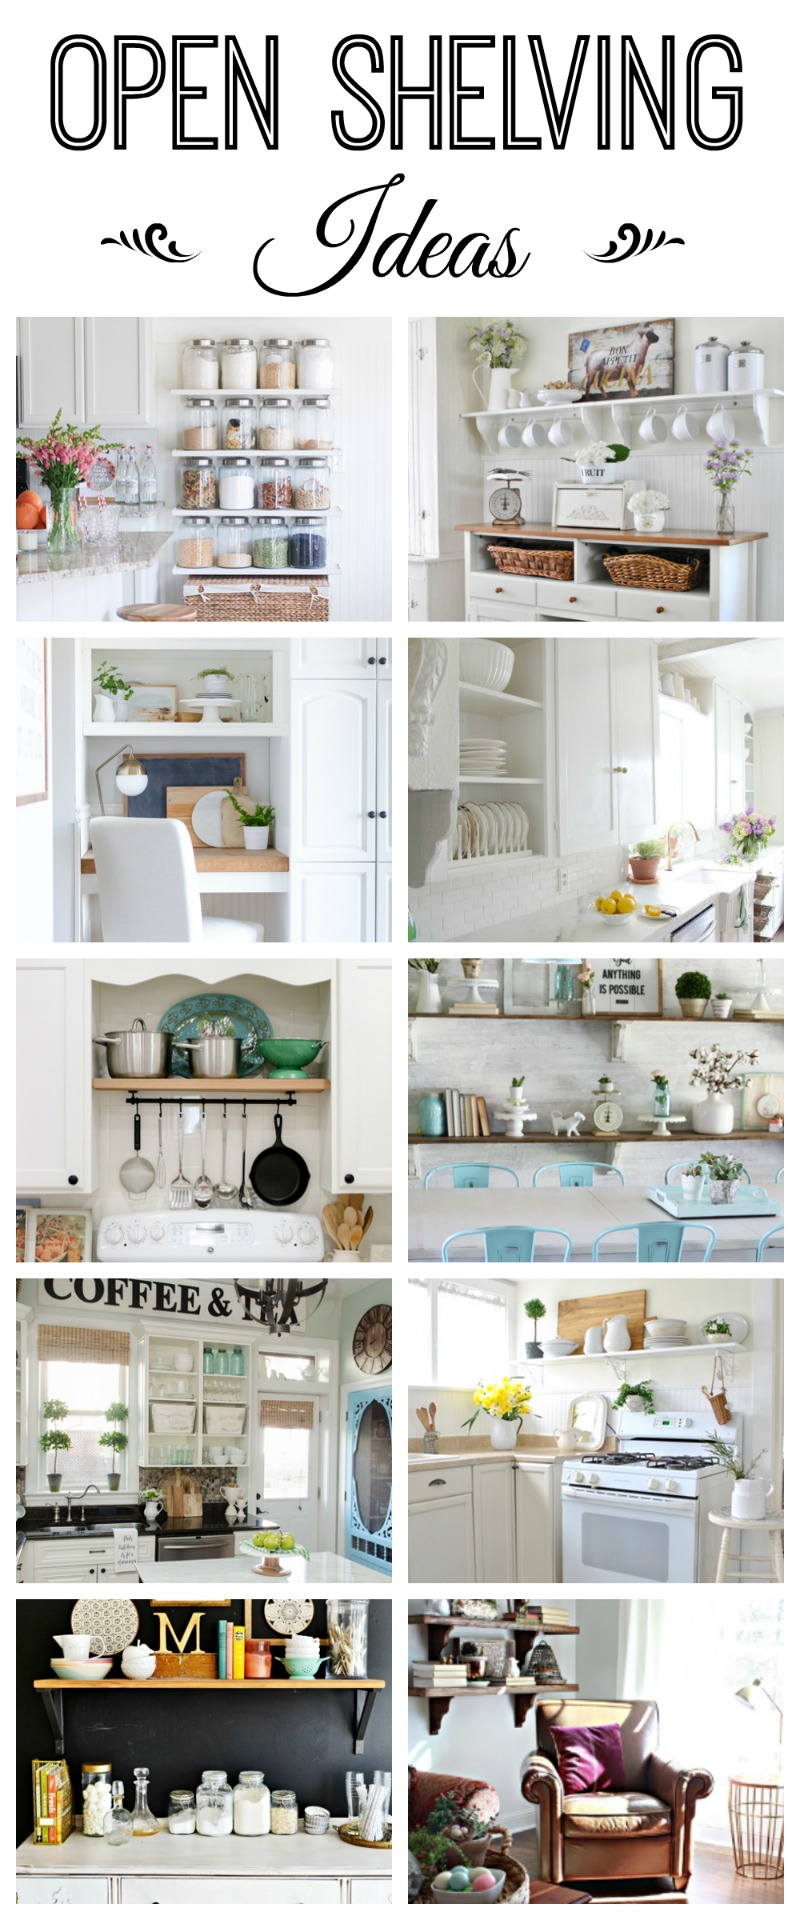 Open shelving ideas how to style town country living for Open storage ideas